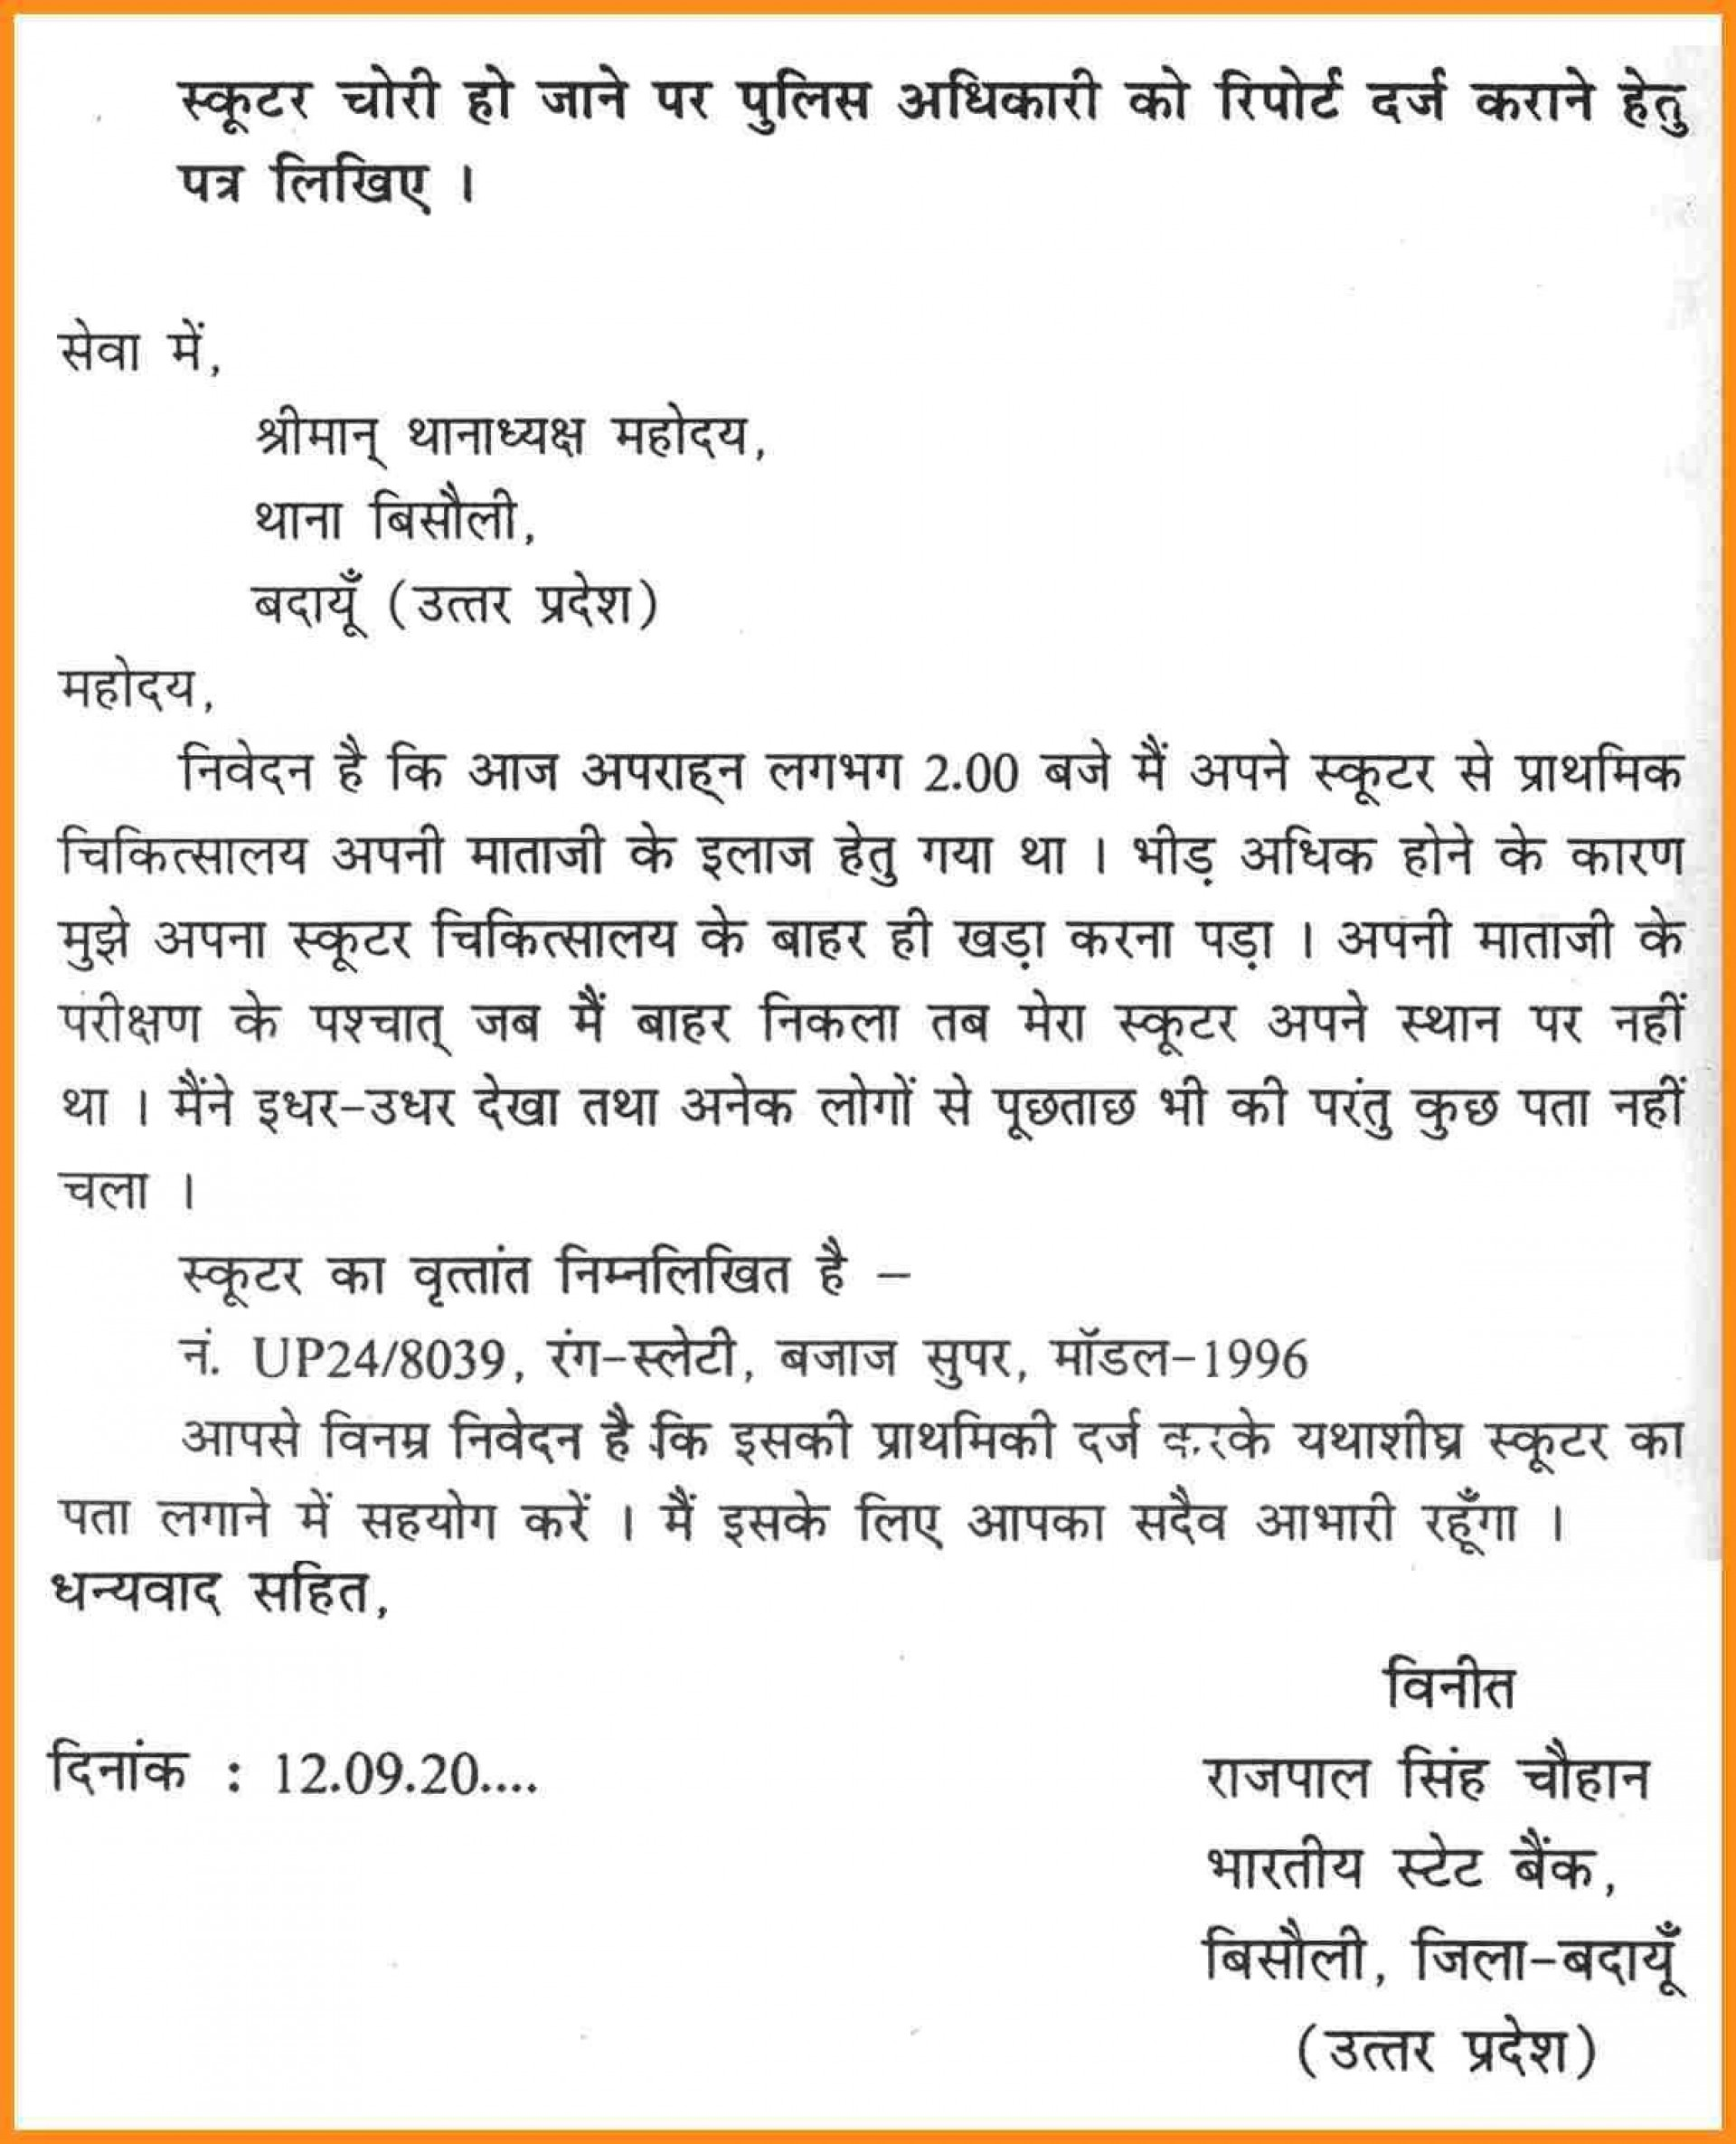 007 Unbelievable Hindi Letter Writing Format Pdf Free Download Inspiration 1920